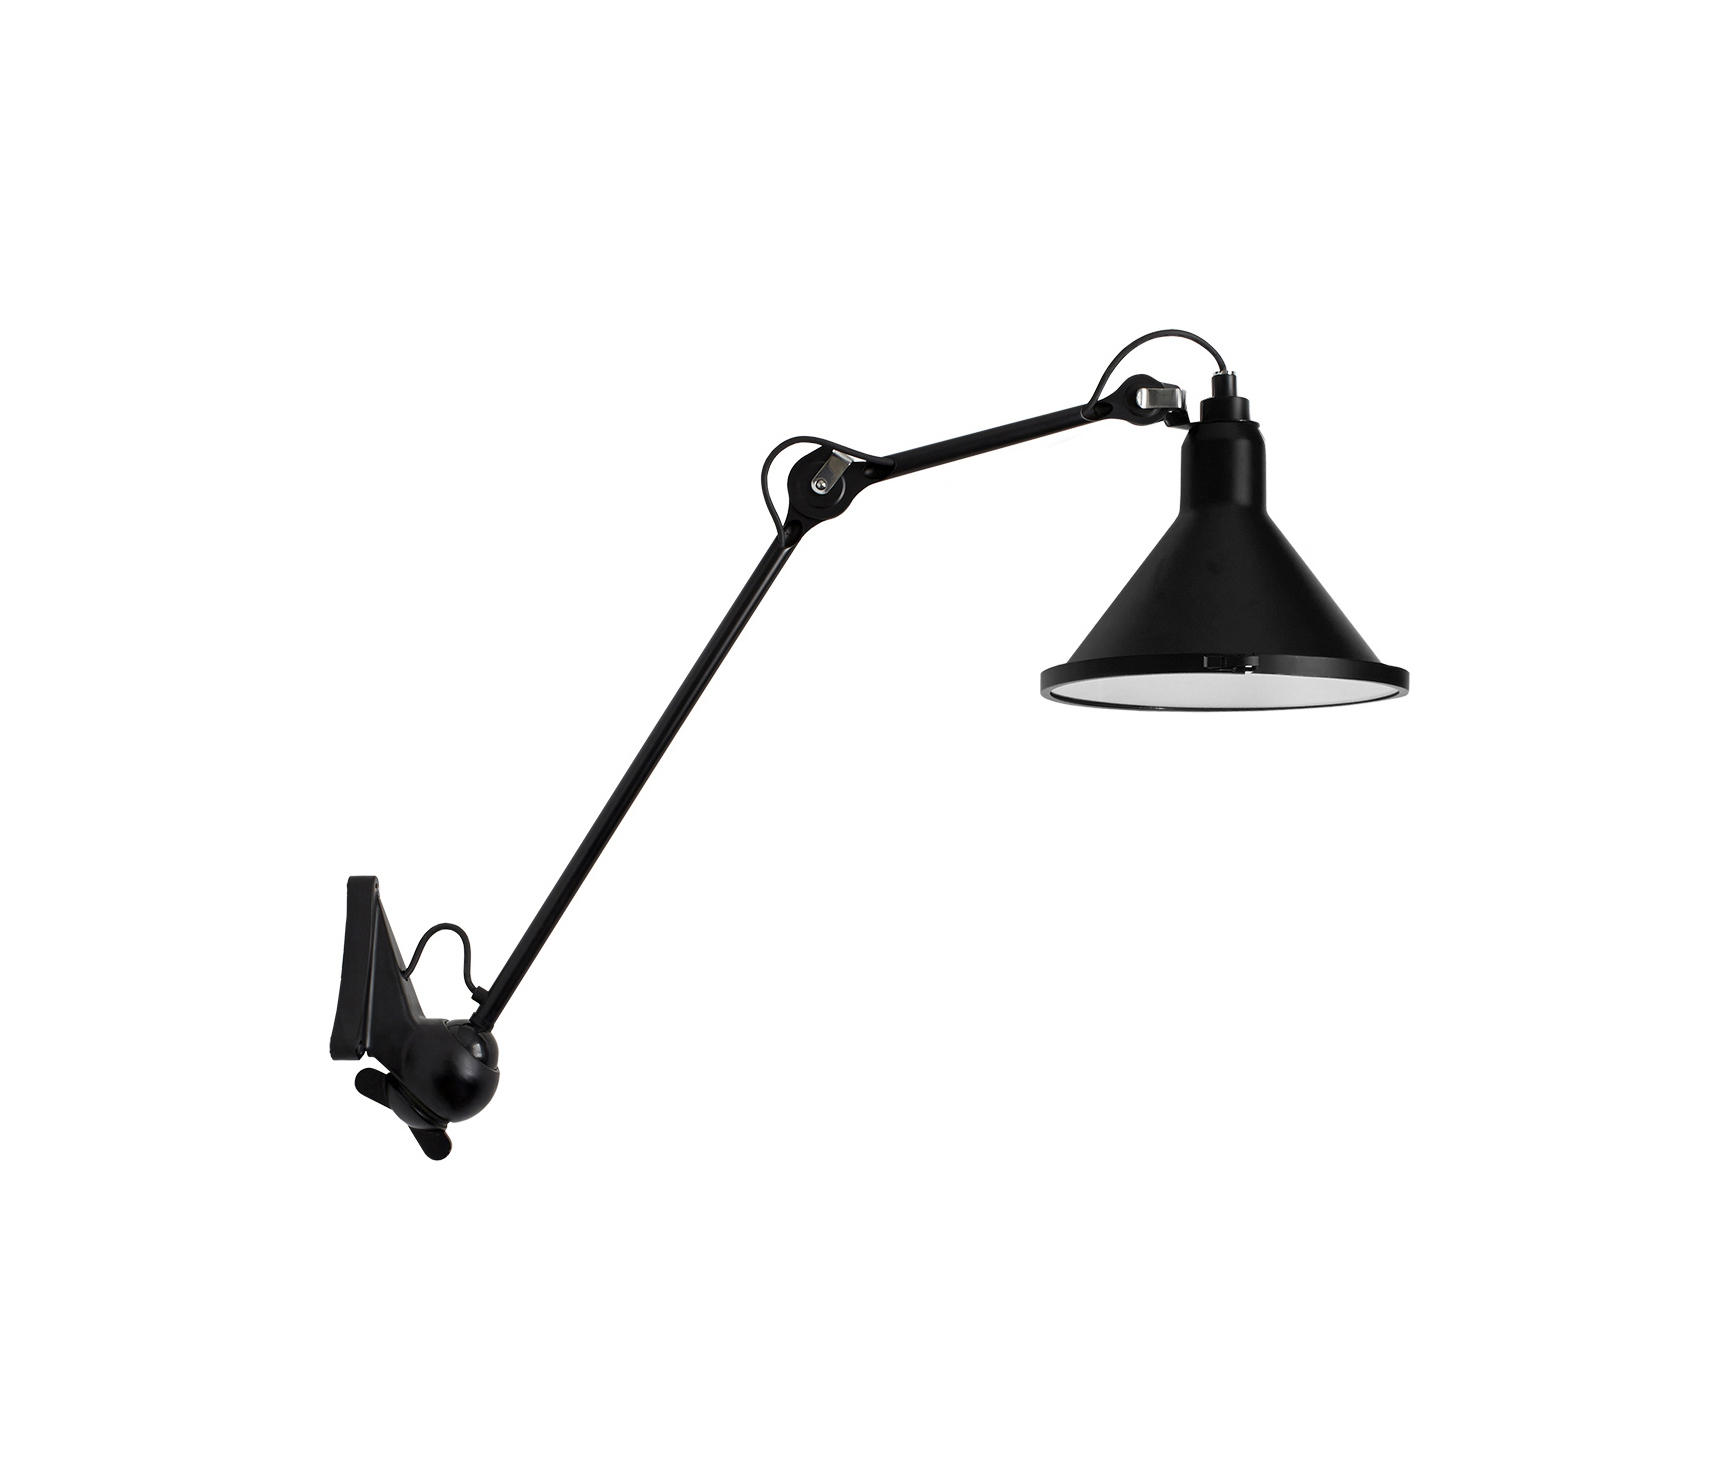 lampe gras xl outdoor sea n 222 black general lighting from dcw ditions architonic. Black Bedroom Furniture Sets. Home Design Ideas